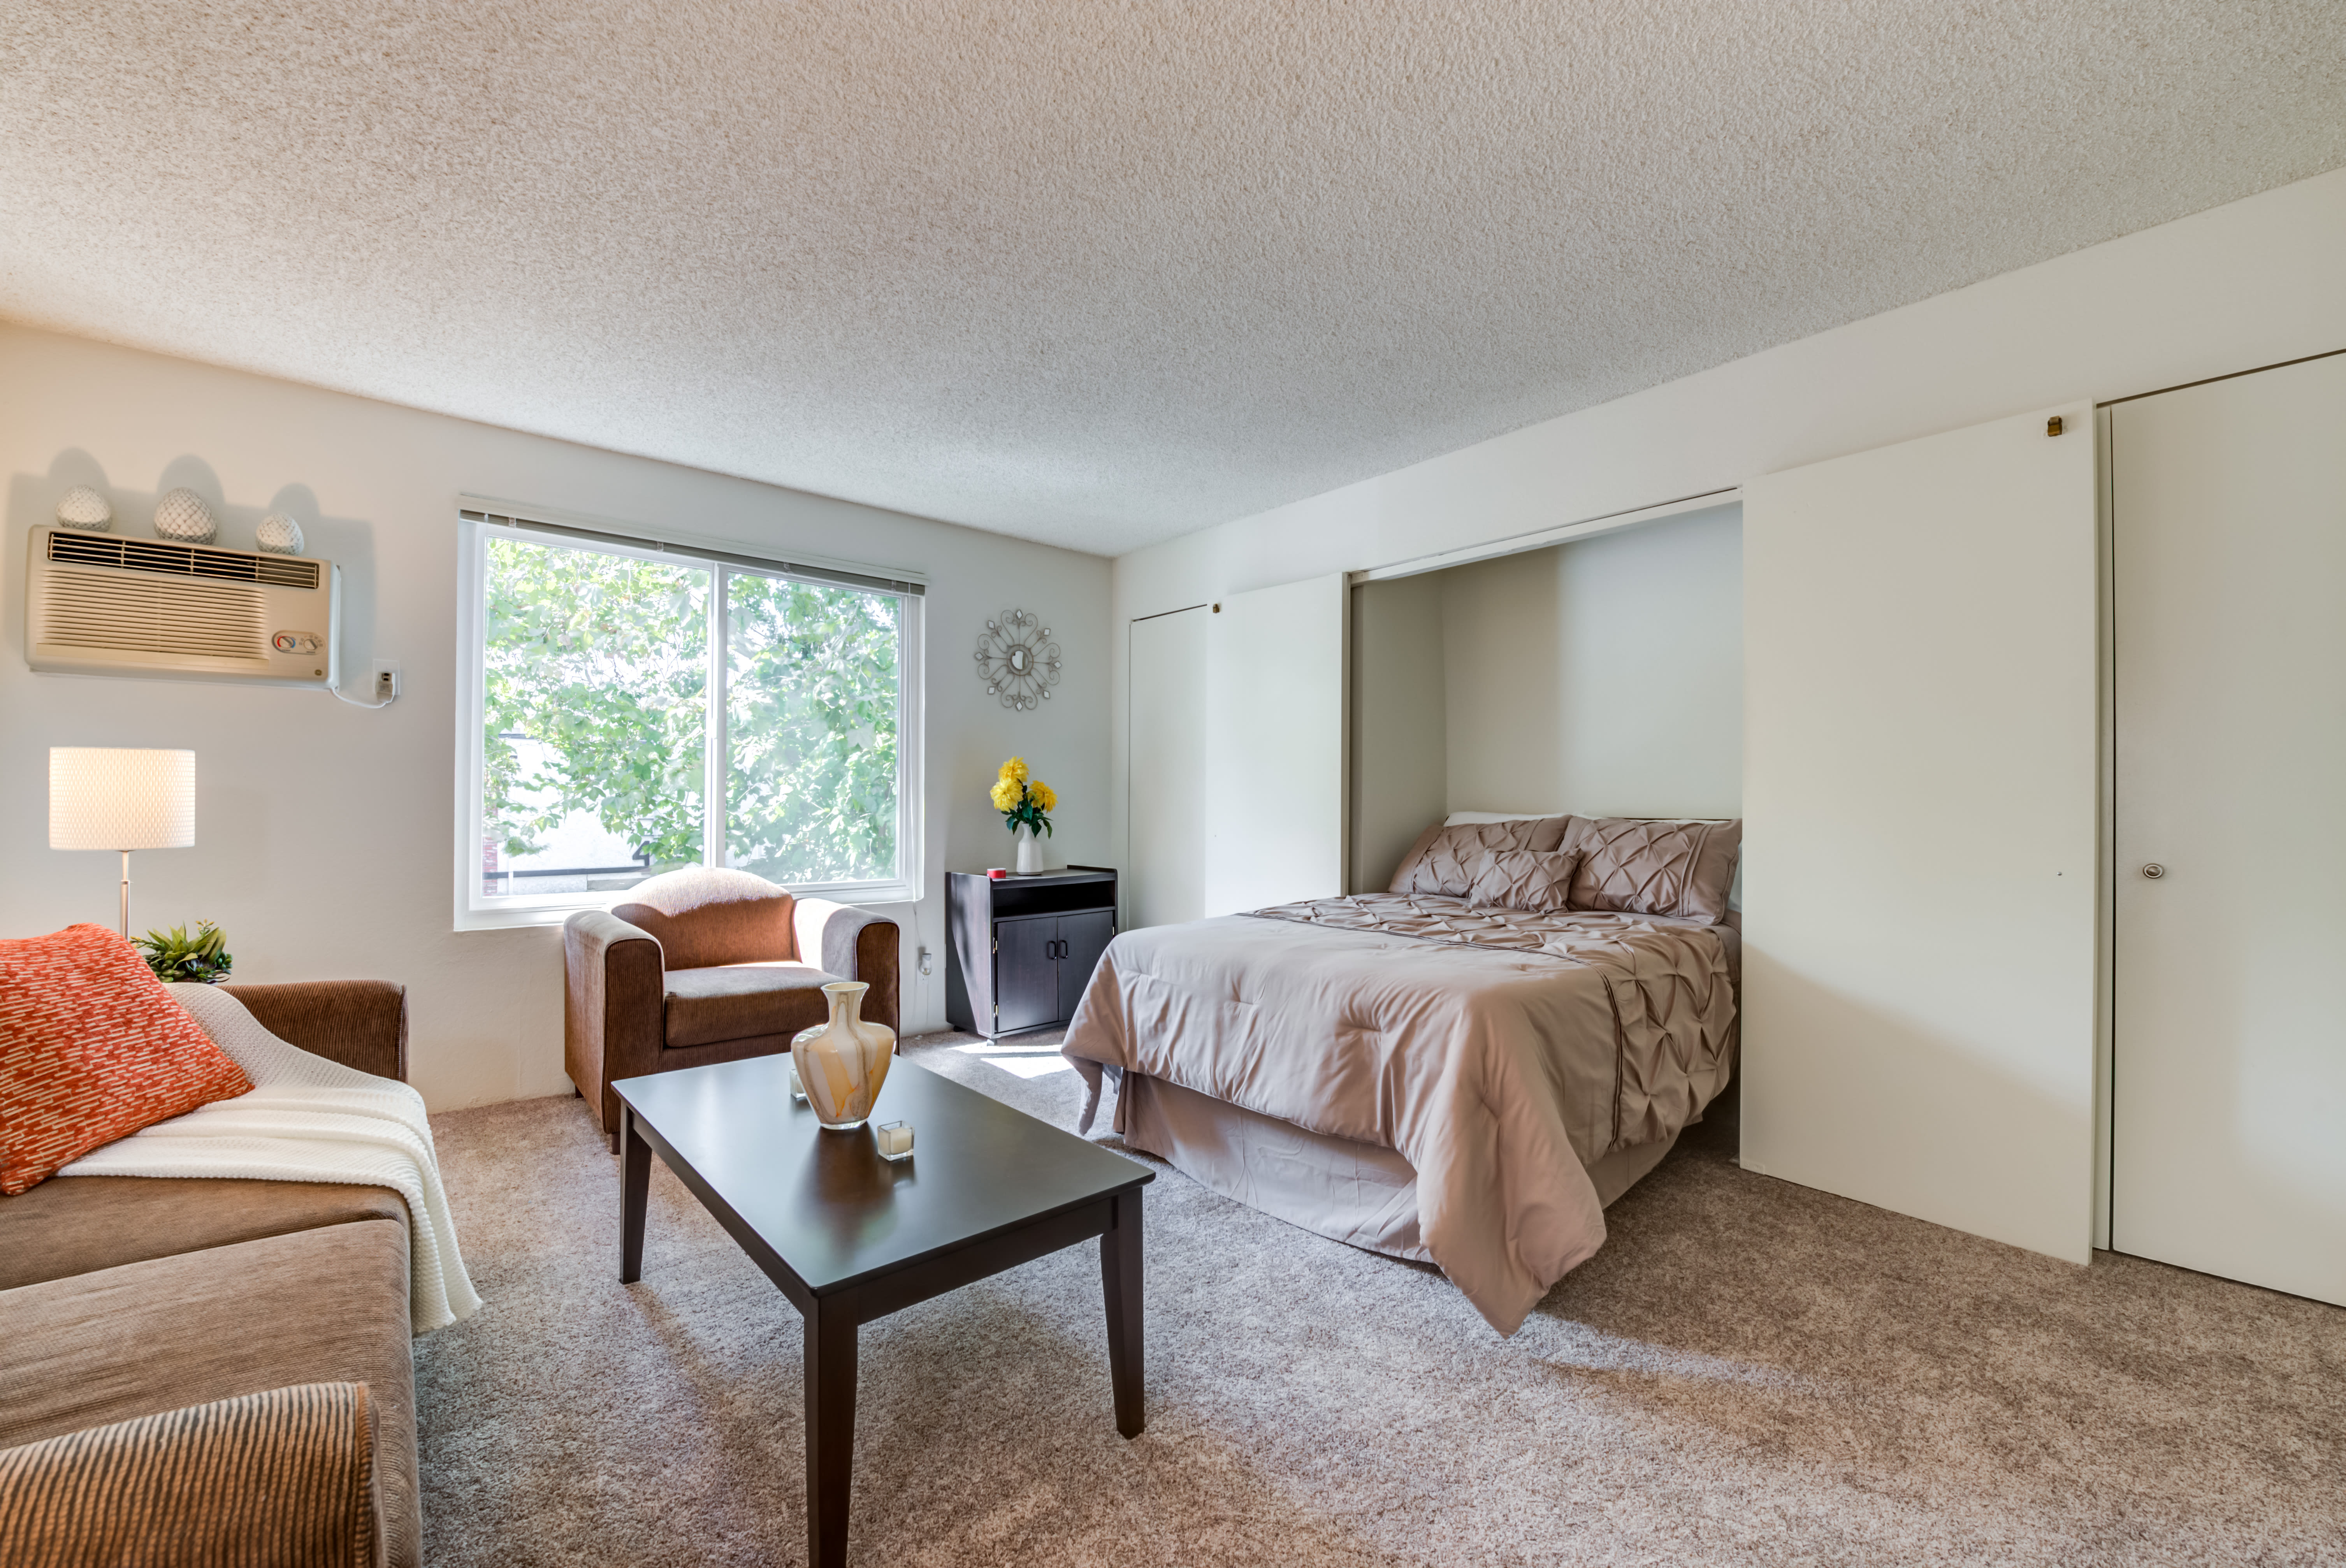 Studio apartment with carpeted floors